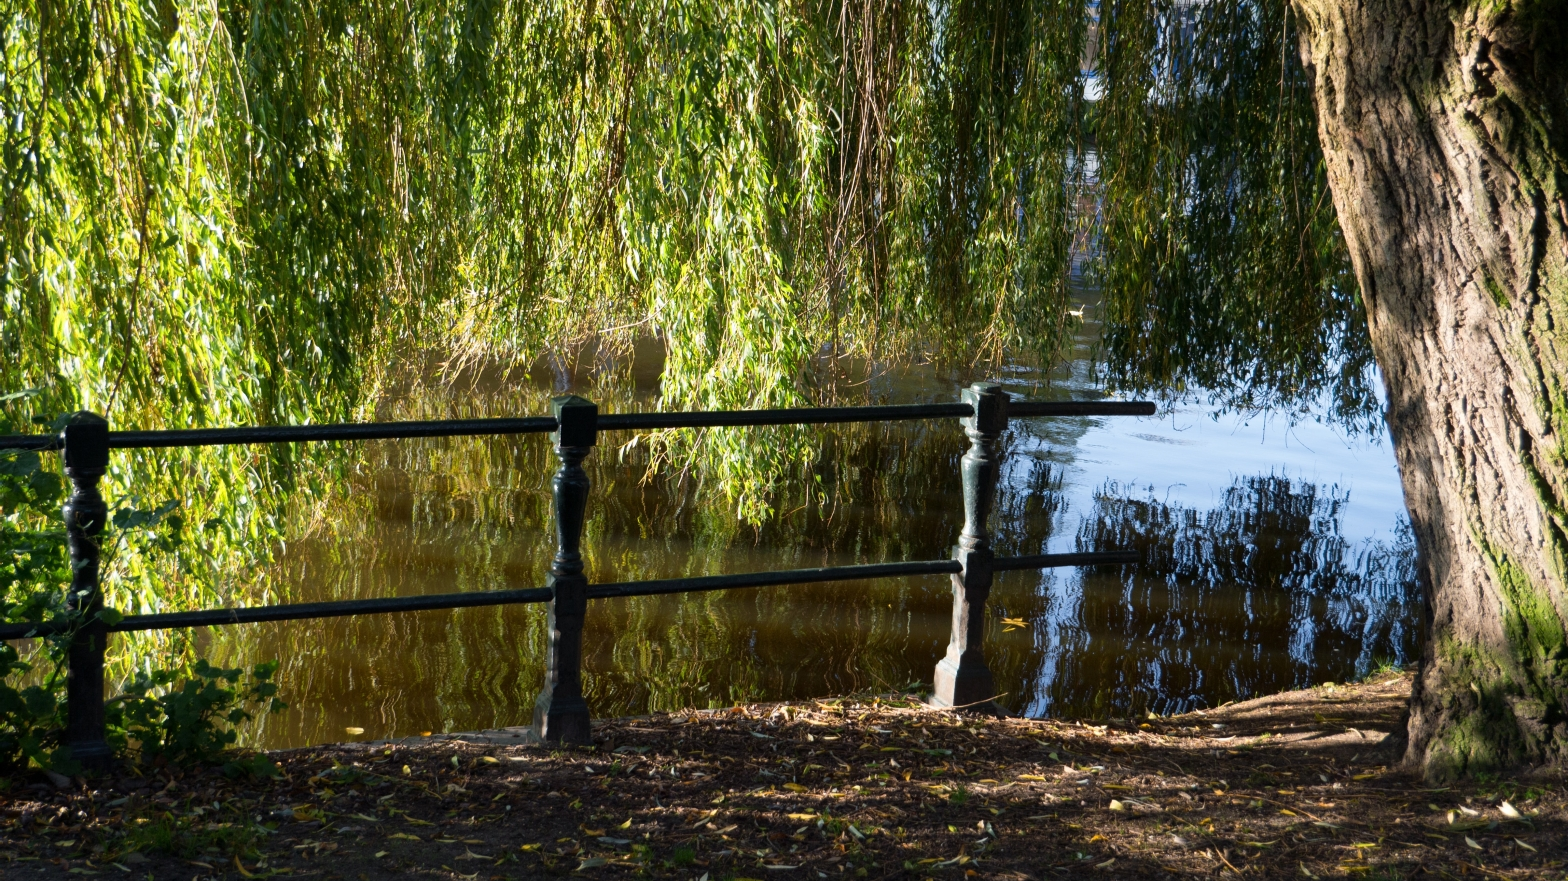 Image shows a willow tree overhanging a lake or river